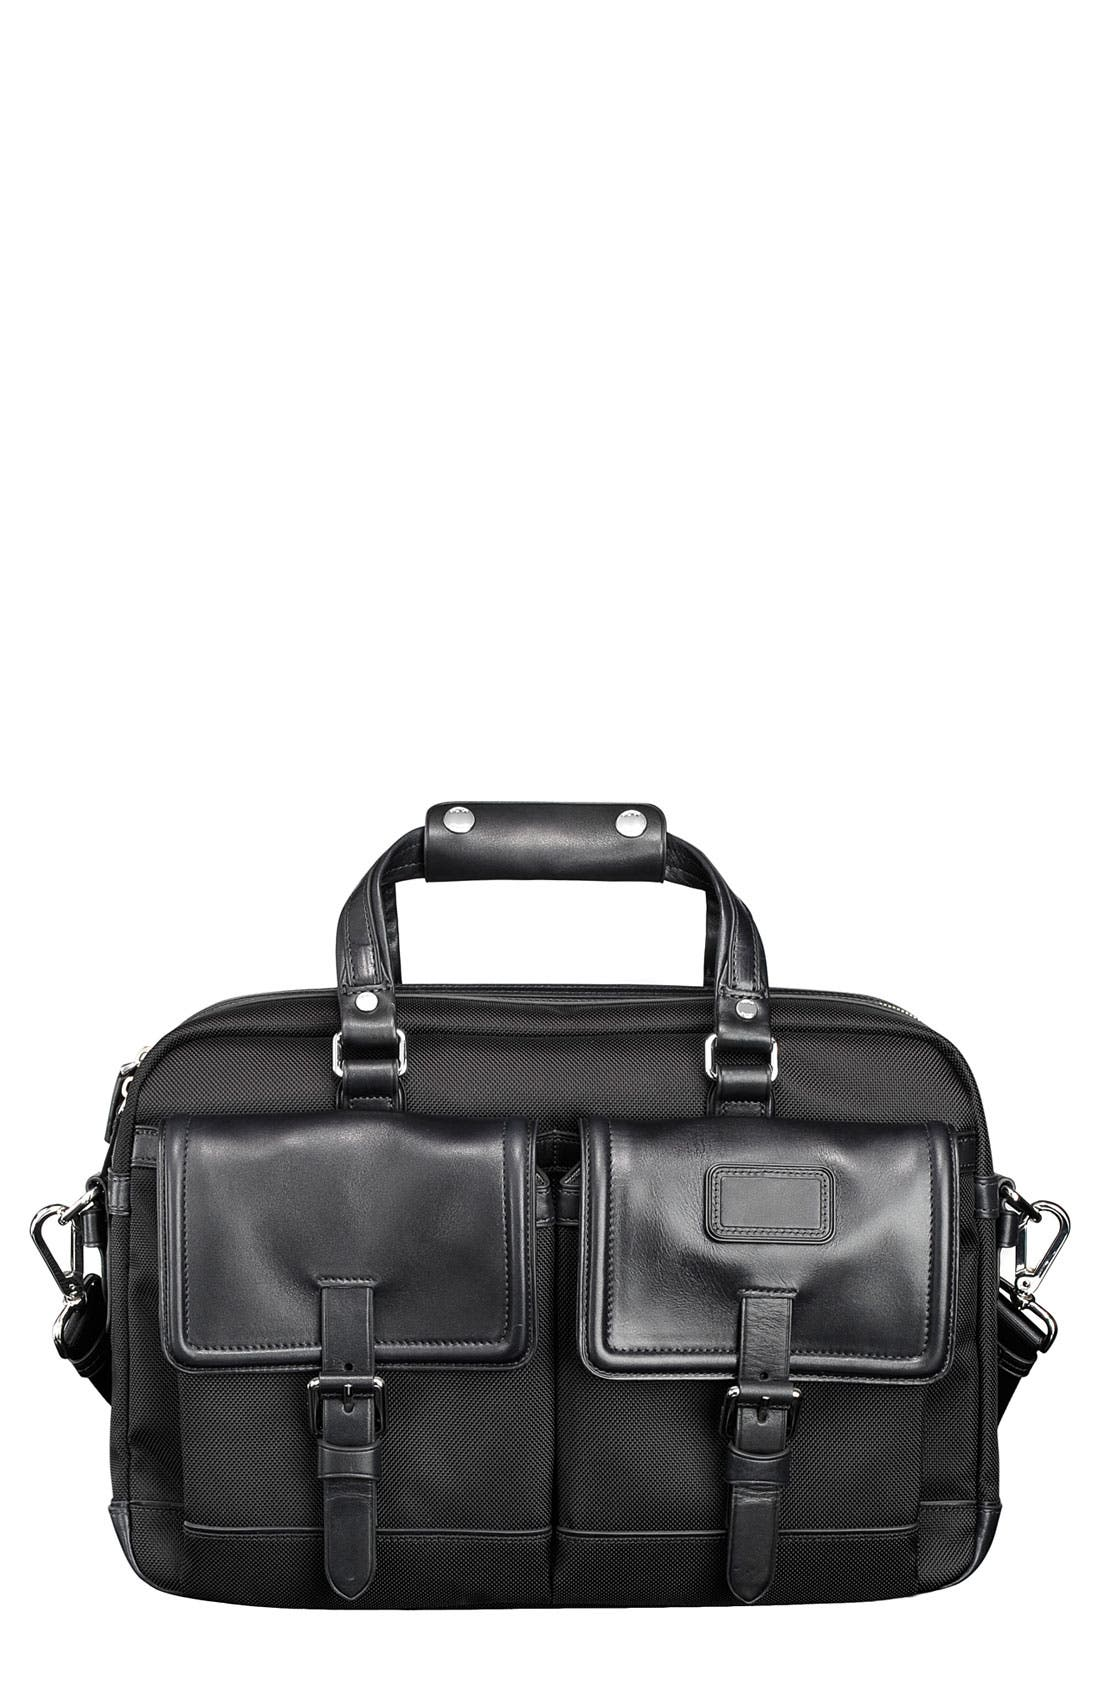 Alternate Image 1 Selected - Tumi 'Bedford - Marley' Briefcase